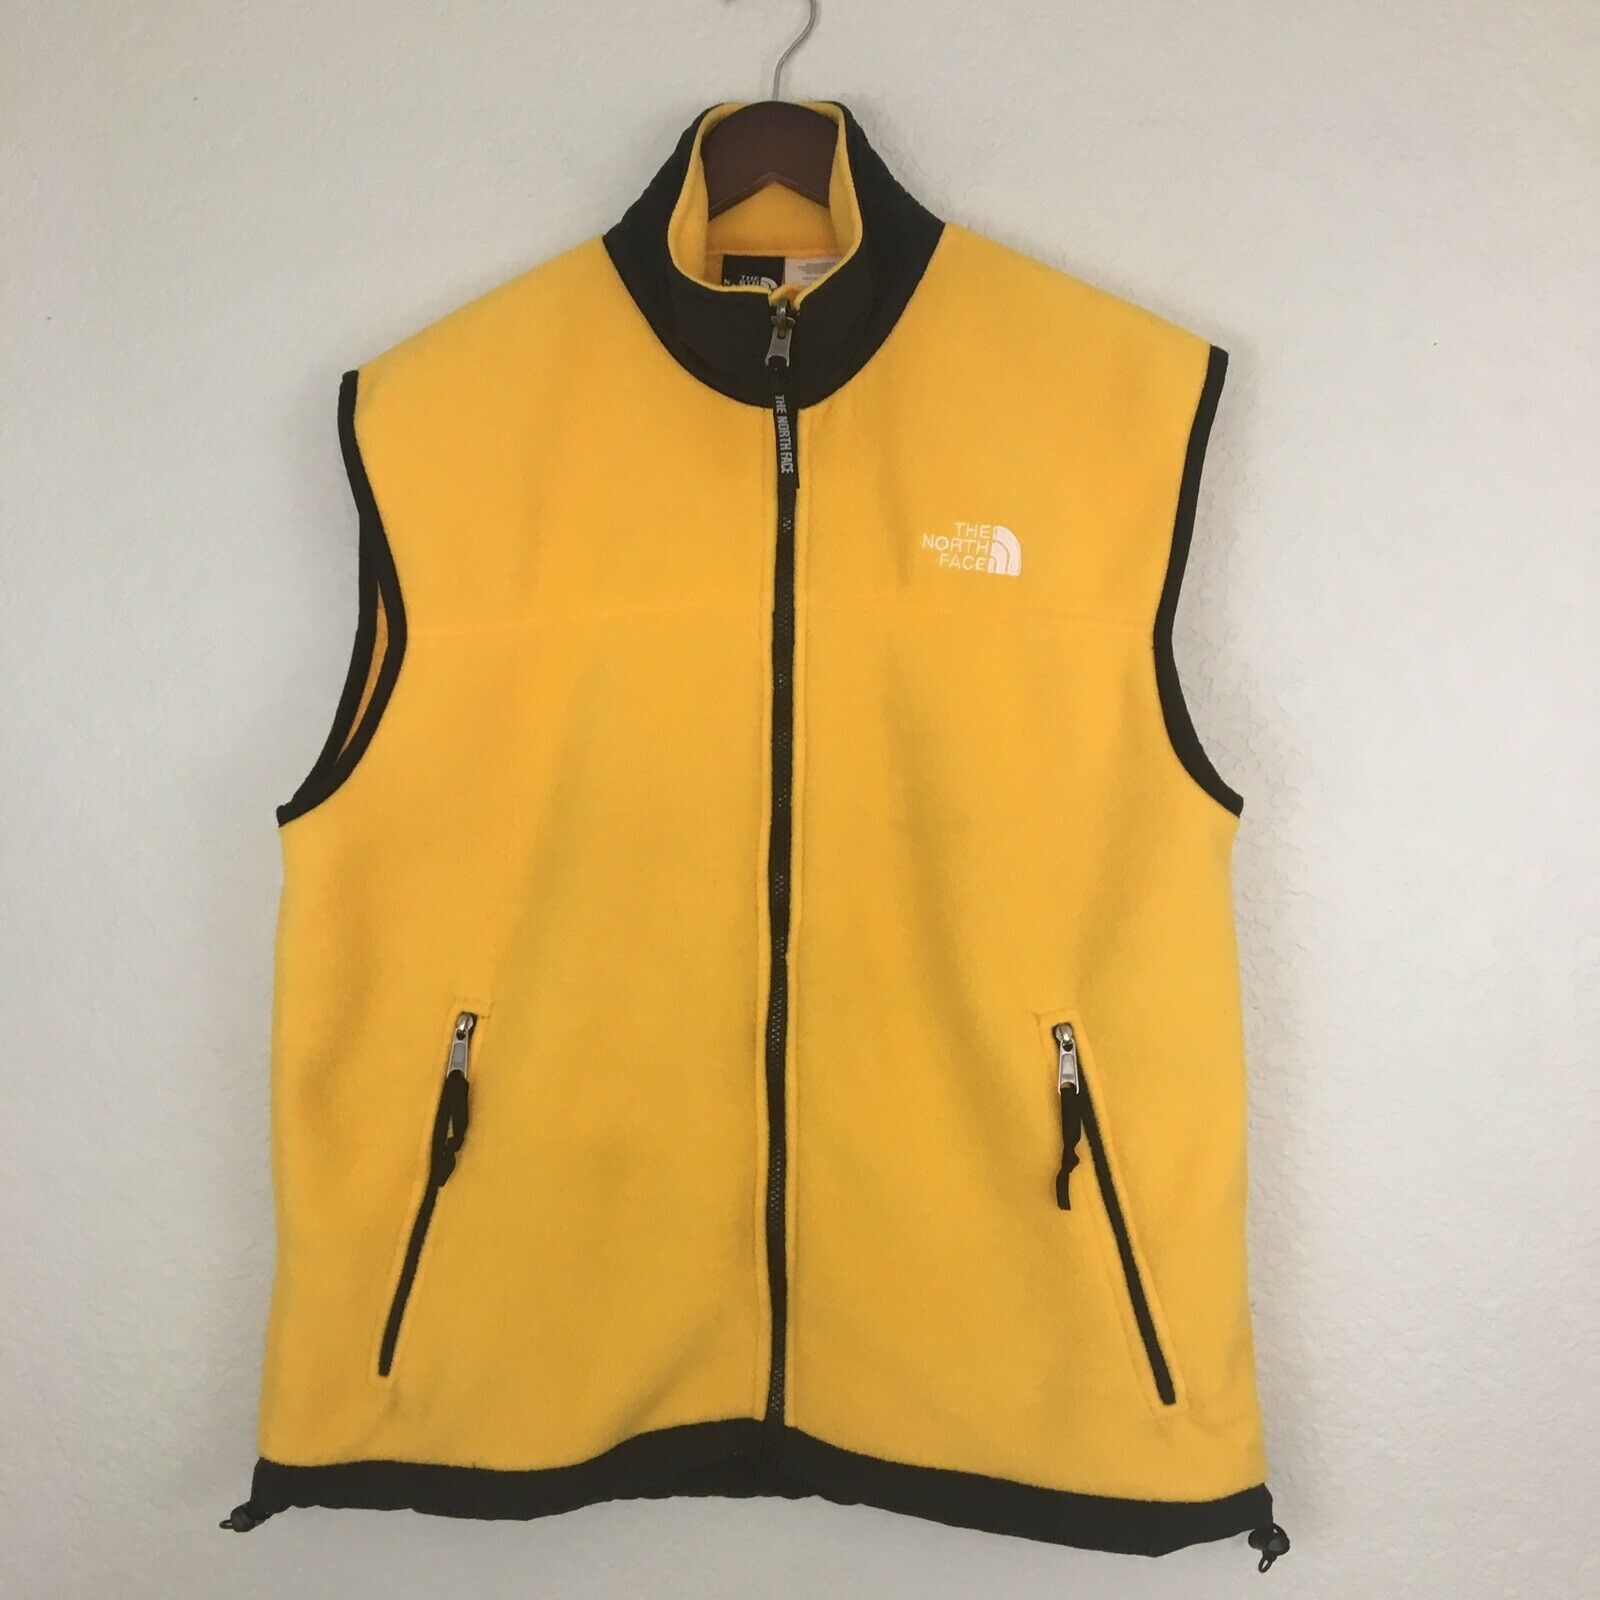 The North Face Yellow Fleece Vest Womens Size Large